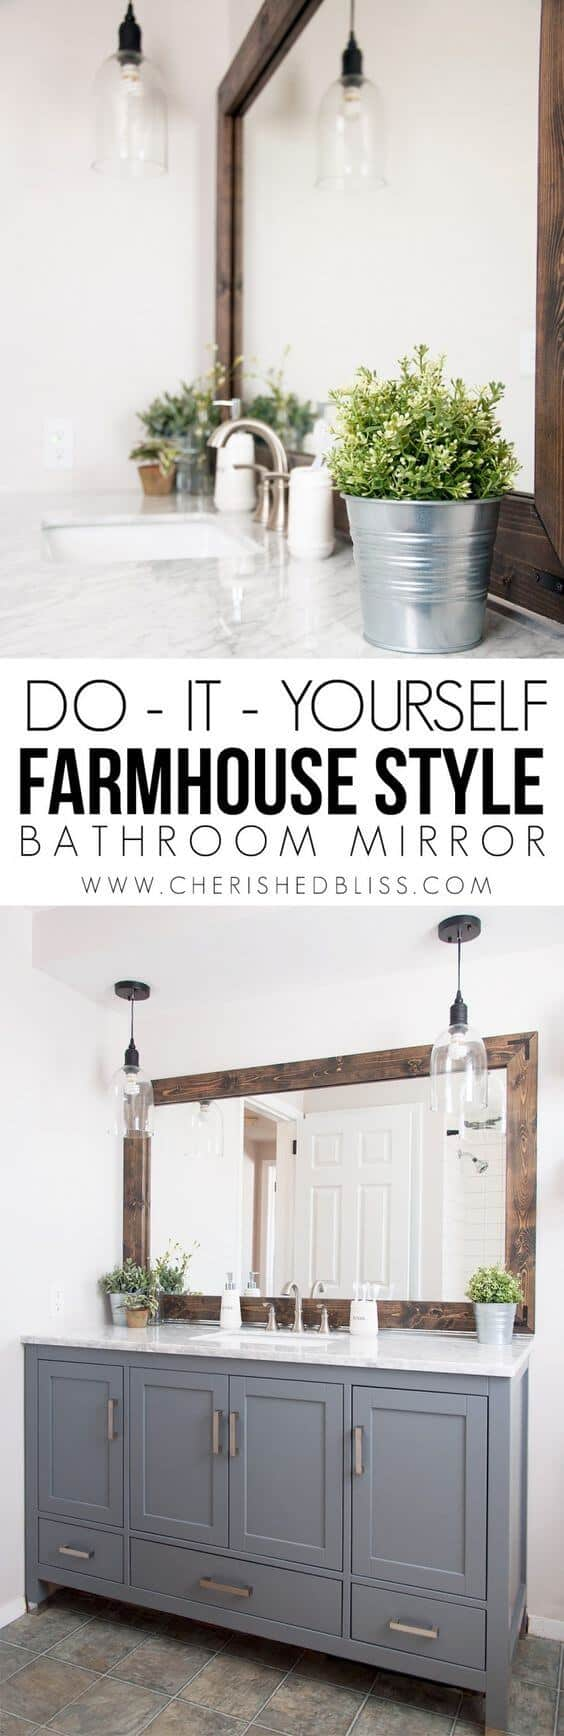 DIY Farmhouse Decor Projects for the Fixer Upper Look - Princess ...